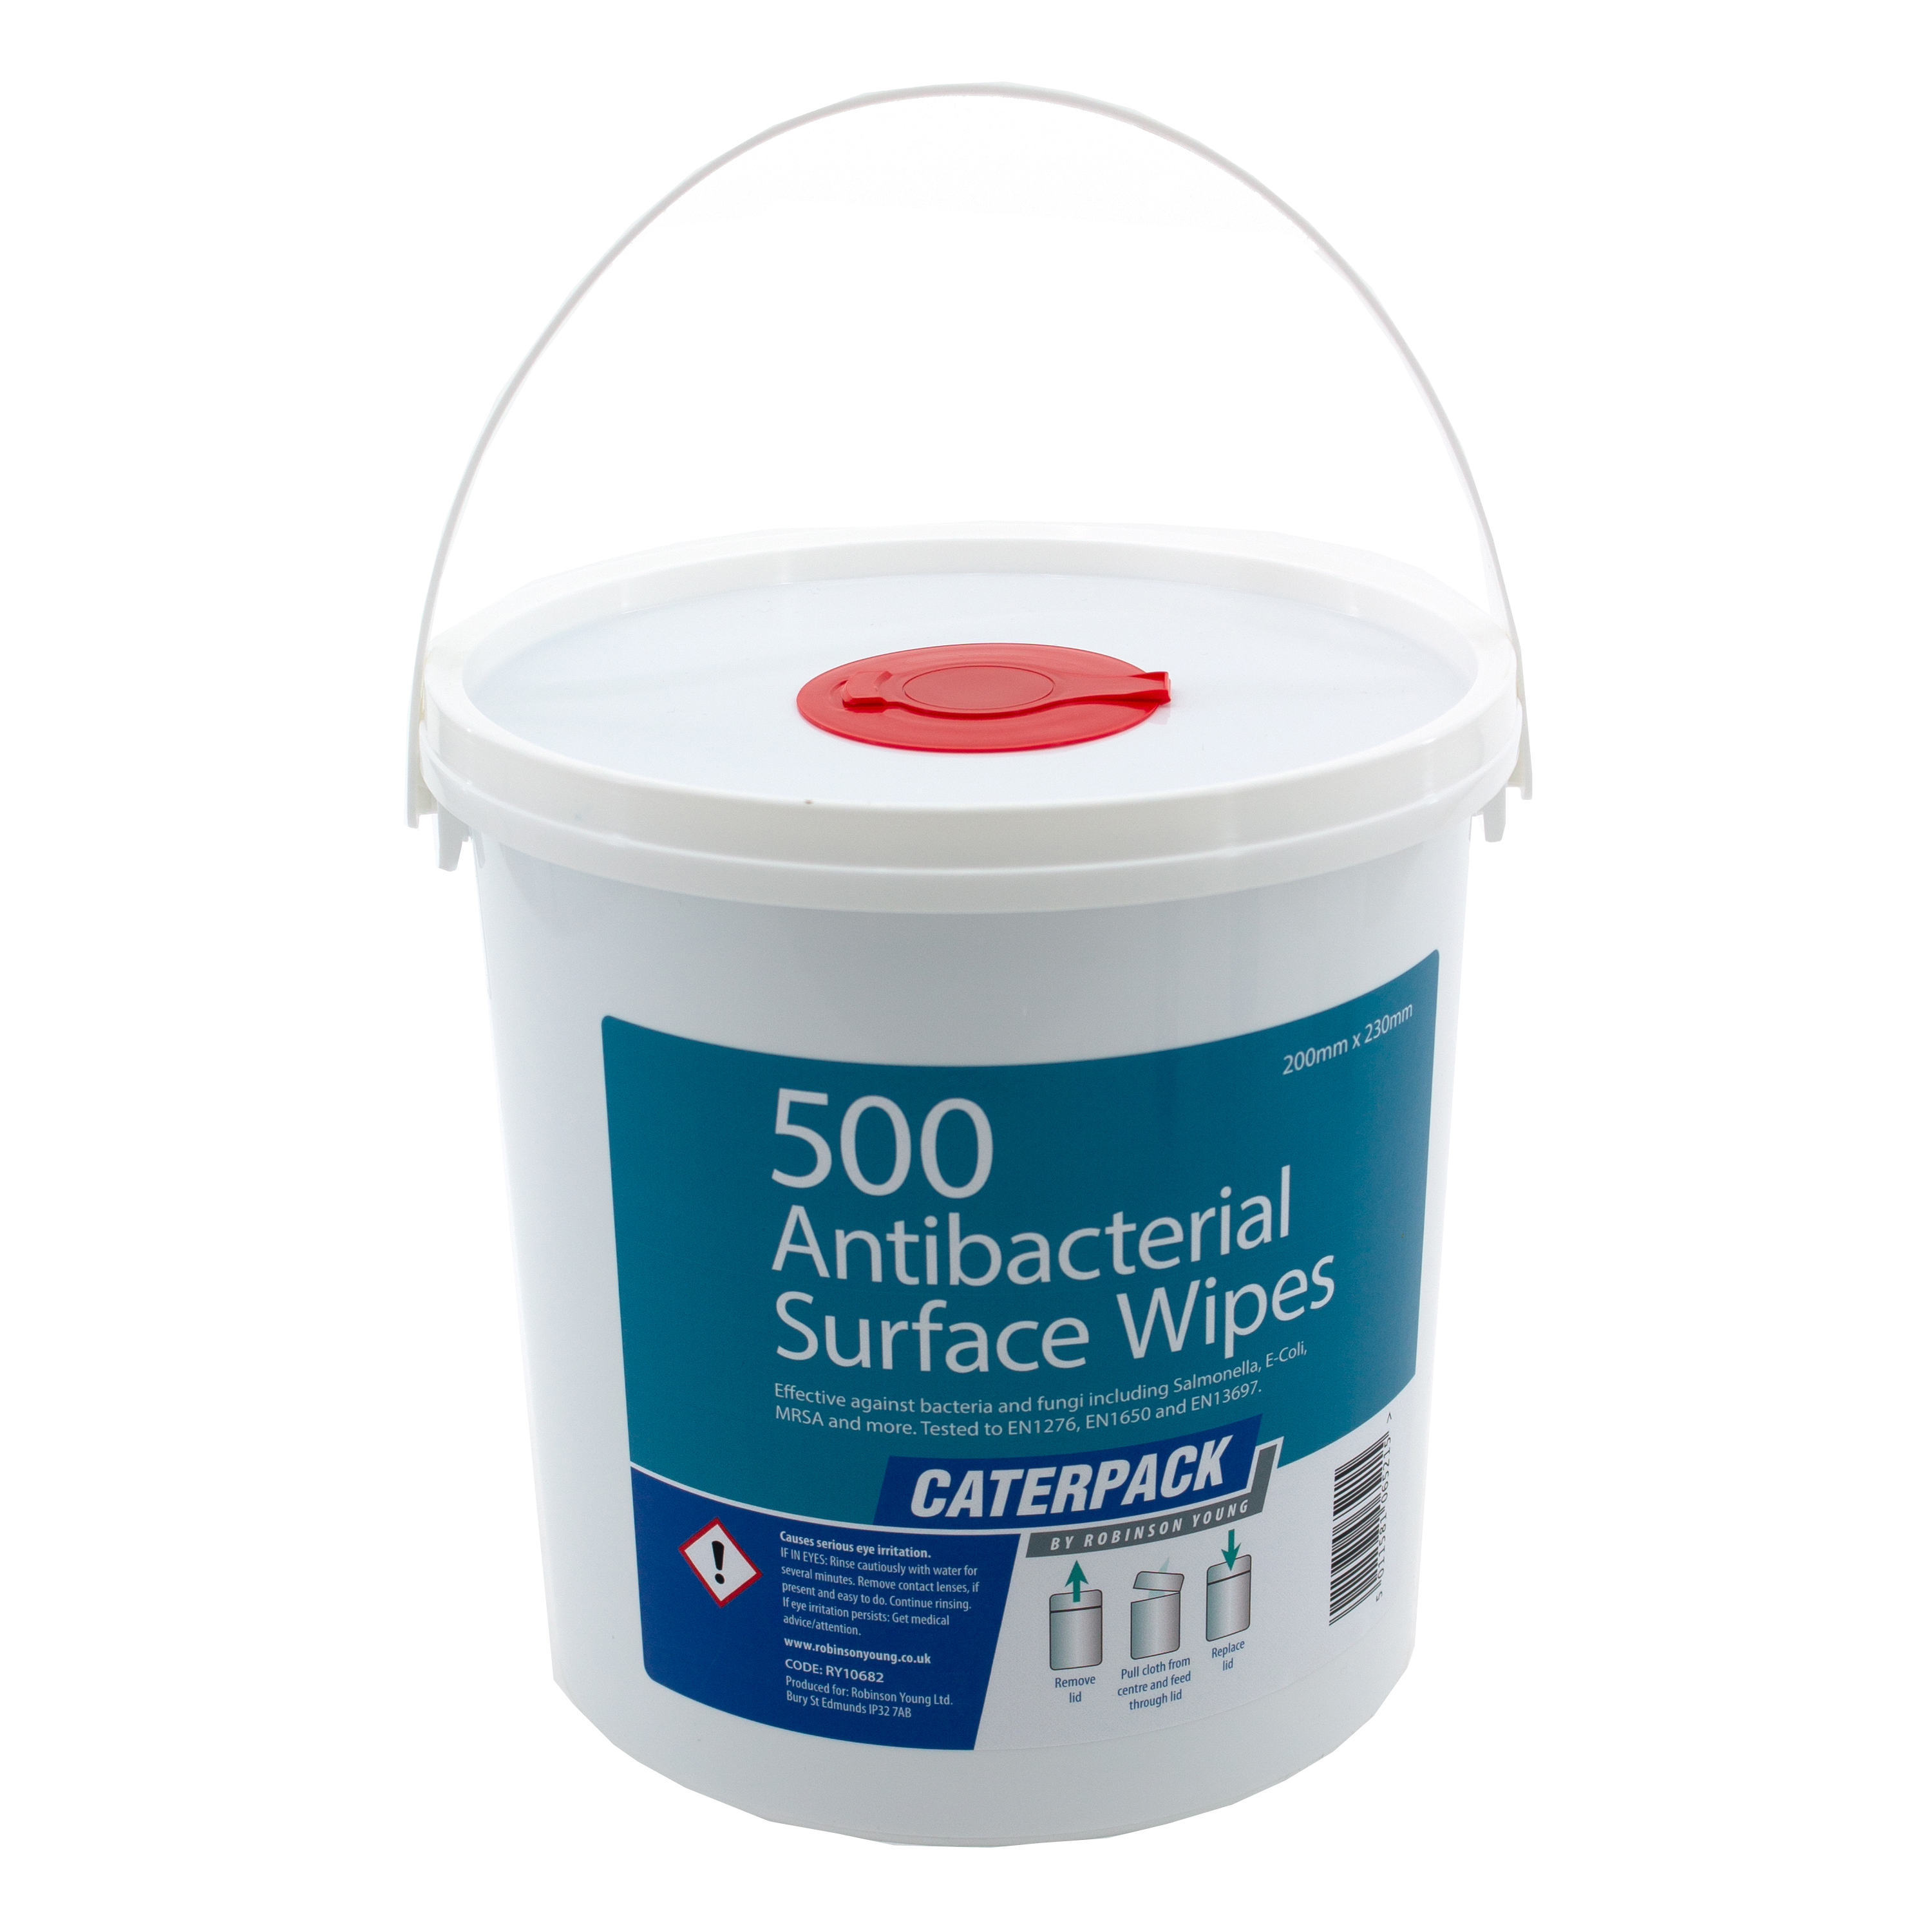 Disinfectant Wipes Robinson Young Caterpack Wipes Antibacterial Disinfectant 200x230mm Ref 10682 Pack 500